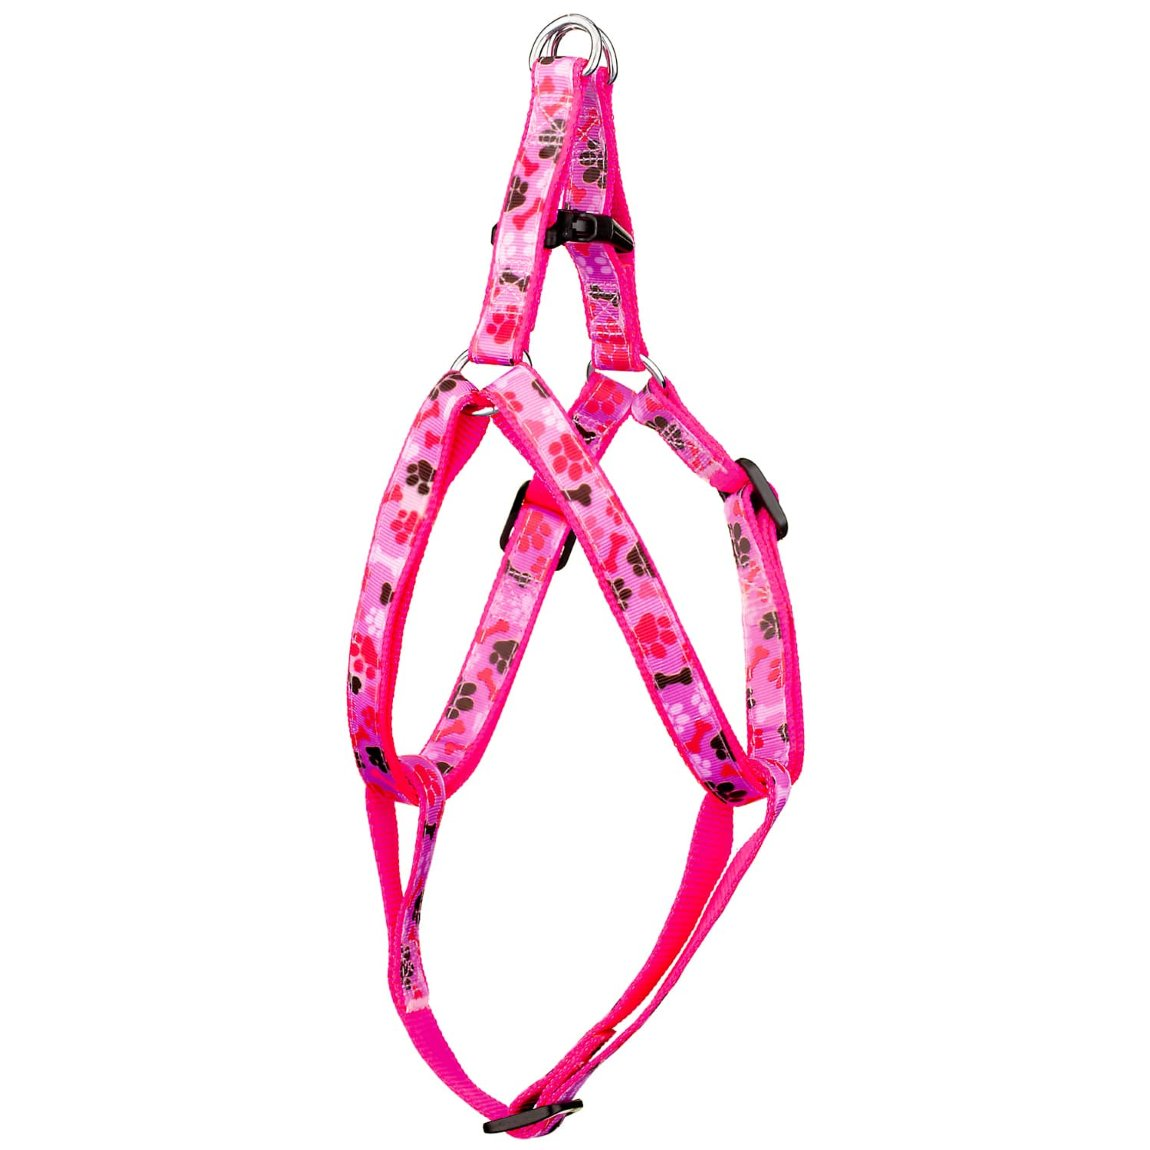 Pooch Couture Adjustable Dog Harness - Small - Pink